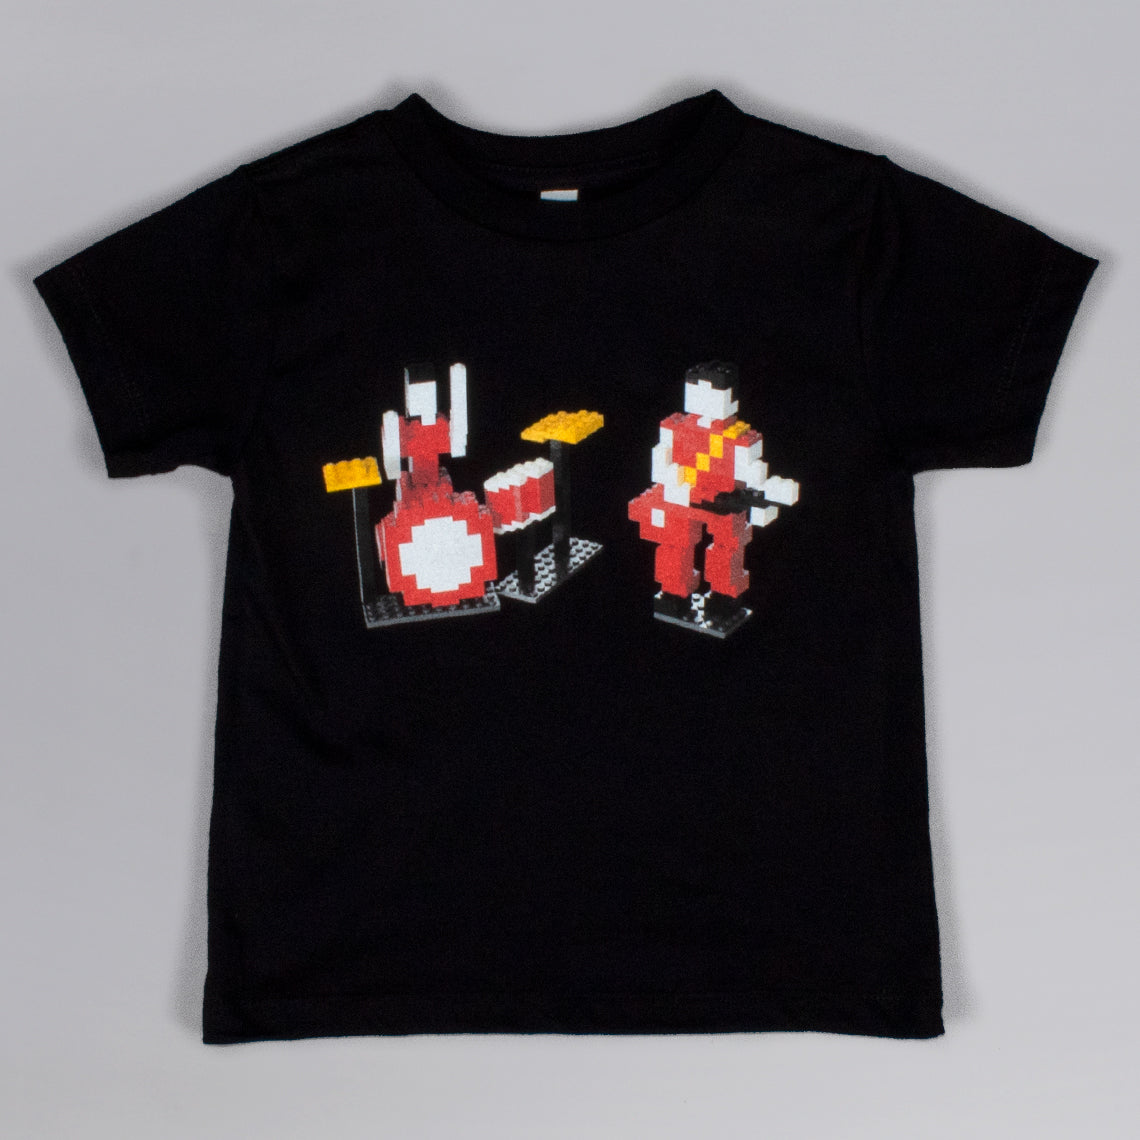 The White Stripes Lego Children's T-Shirt